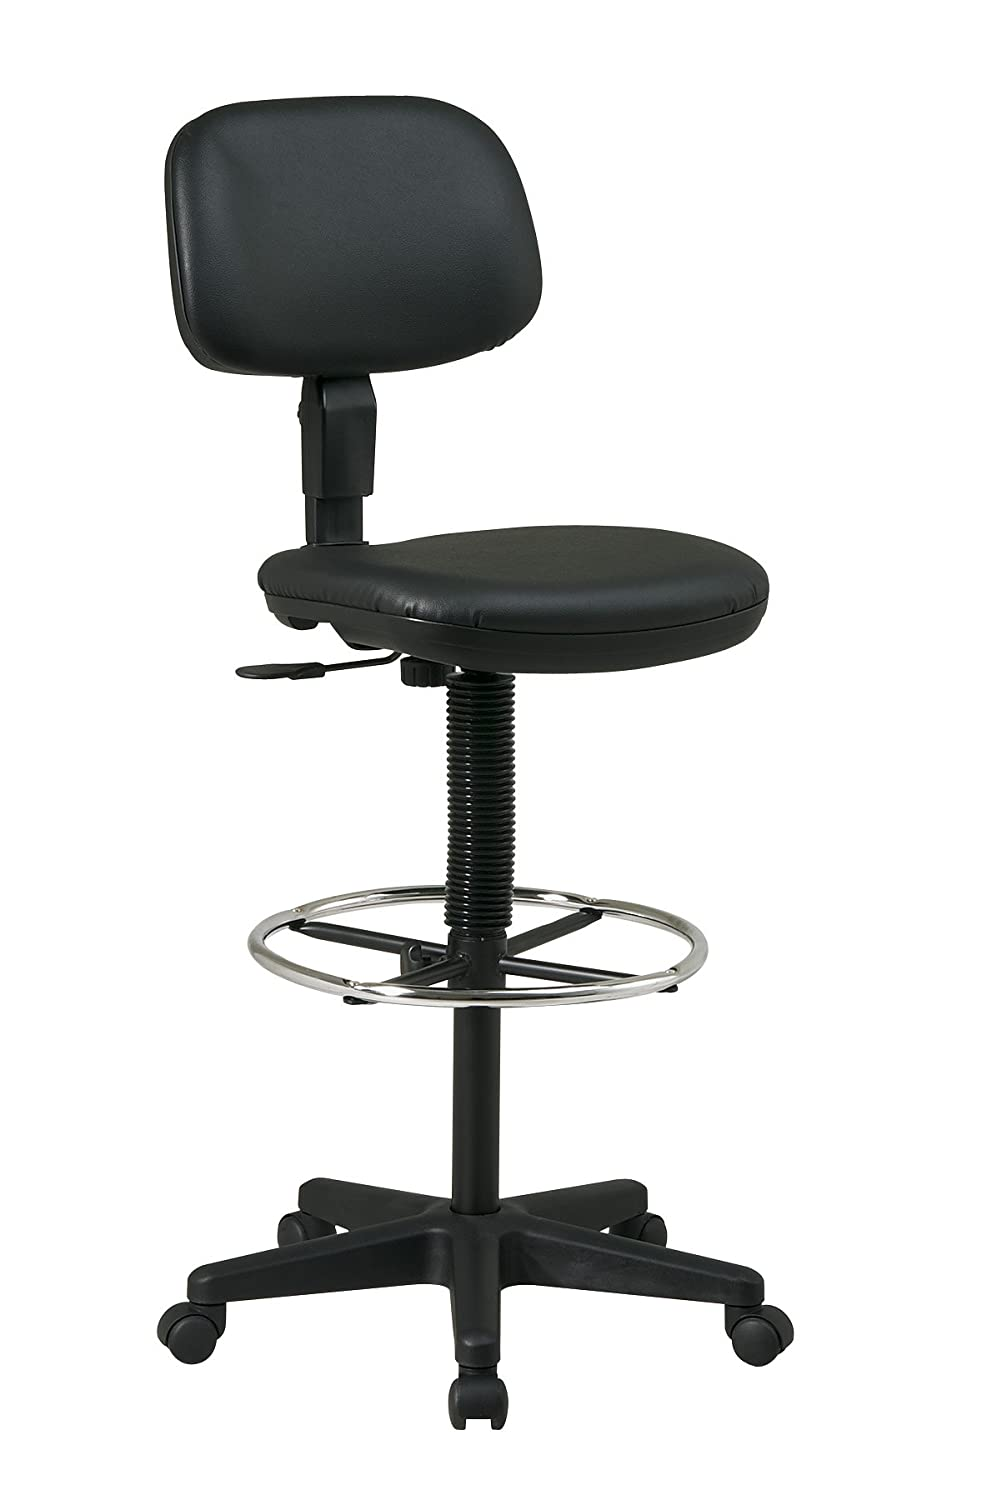 Office Star Sculptured Vinyl Seat and Back Pneumatic Drafting Chair with Adjustable Chrome Foot ring, Black DC517V